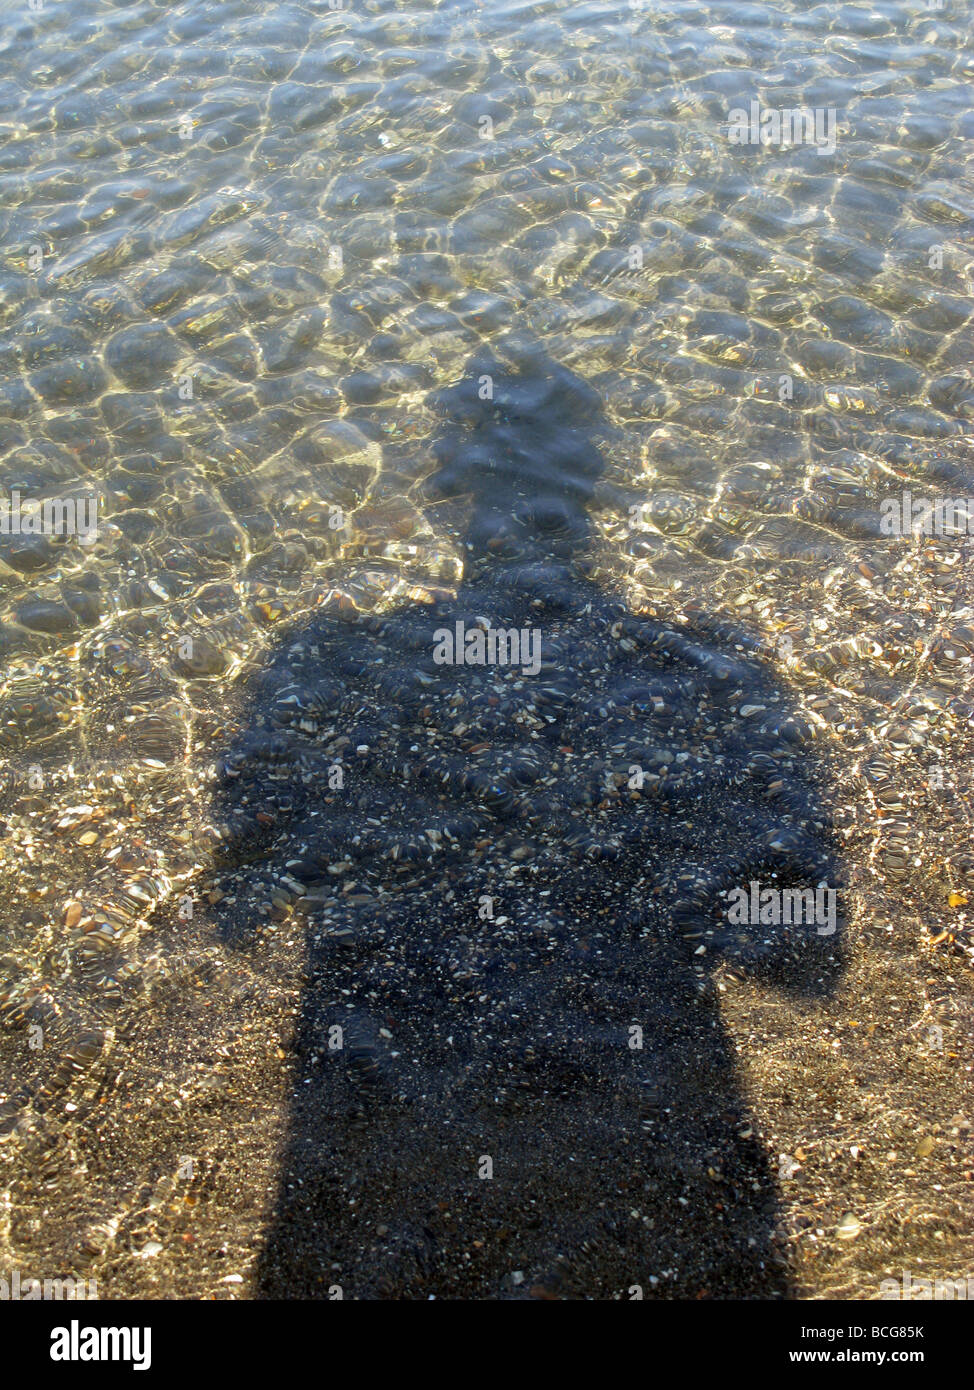 Shadow In Water : shadow, water, Person's, Shadow, Water, Surface, Stock, Photo, Alamy